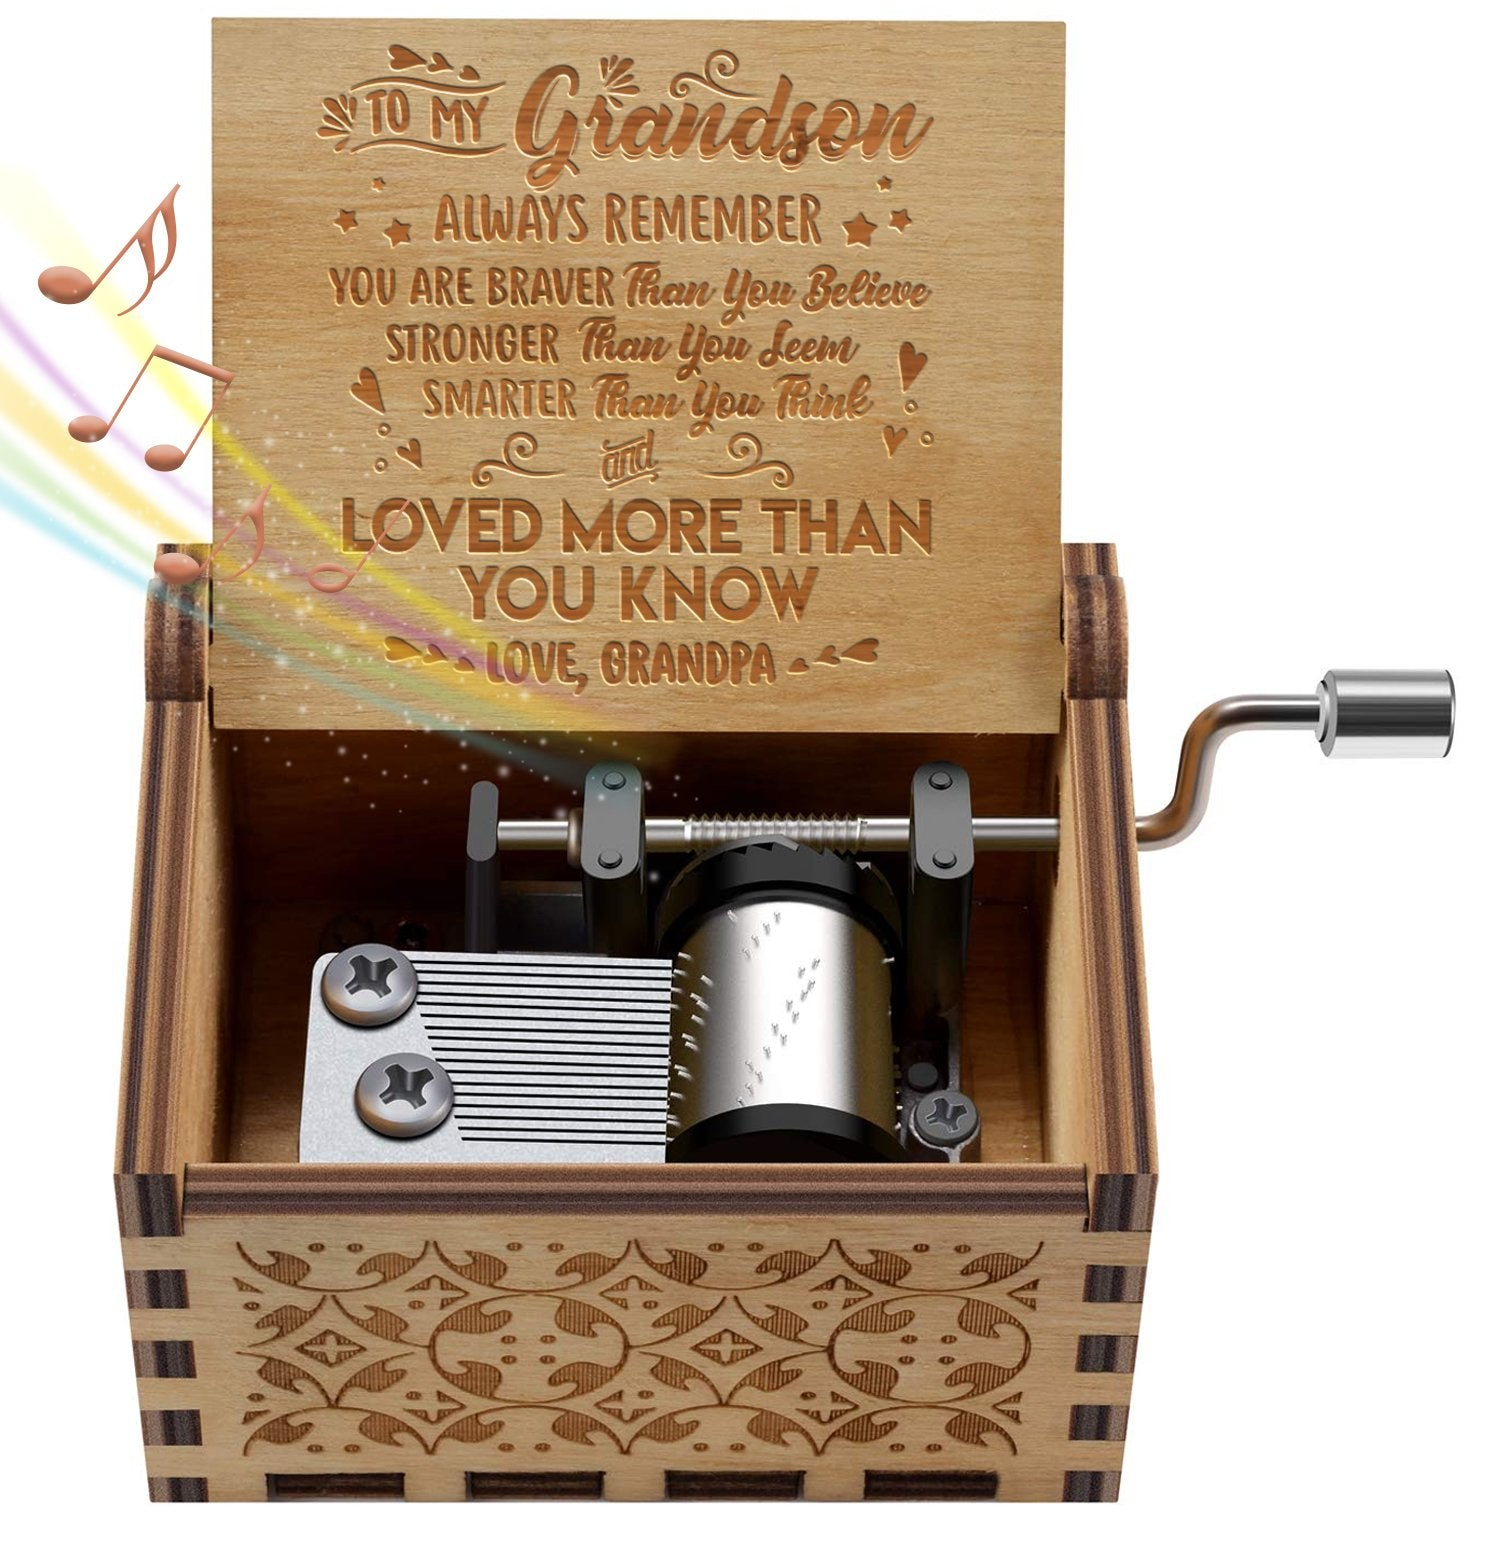 Grandpa To Grandson - You Are Loved More Than You Know - Engraved Music Box - Candyhousehold